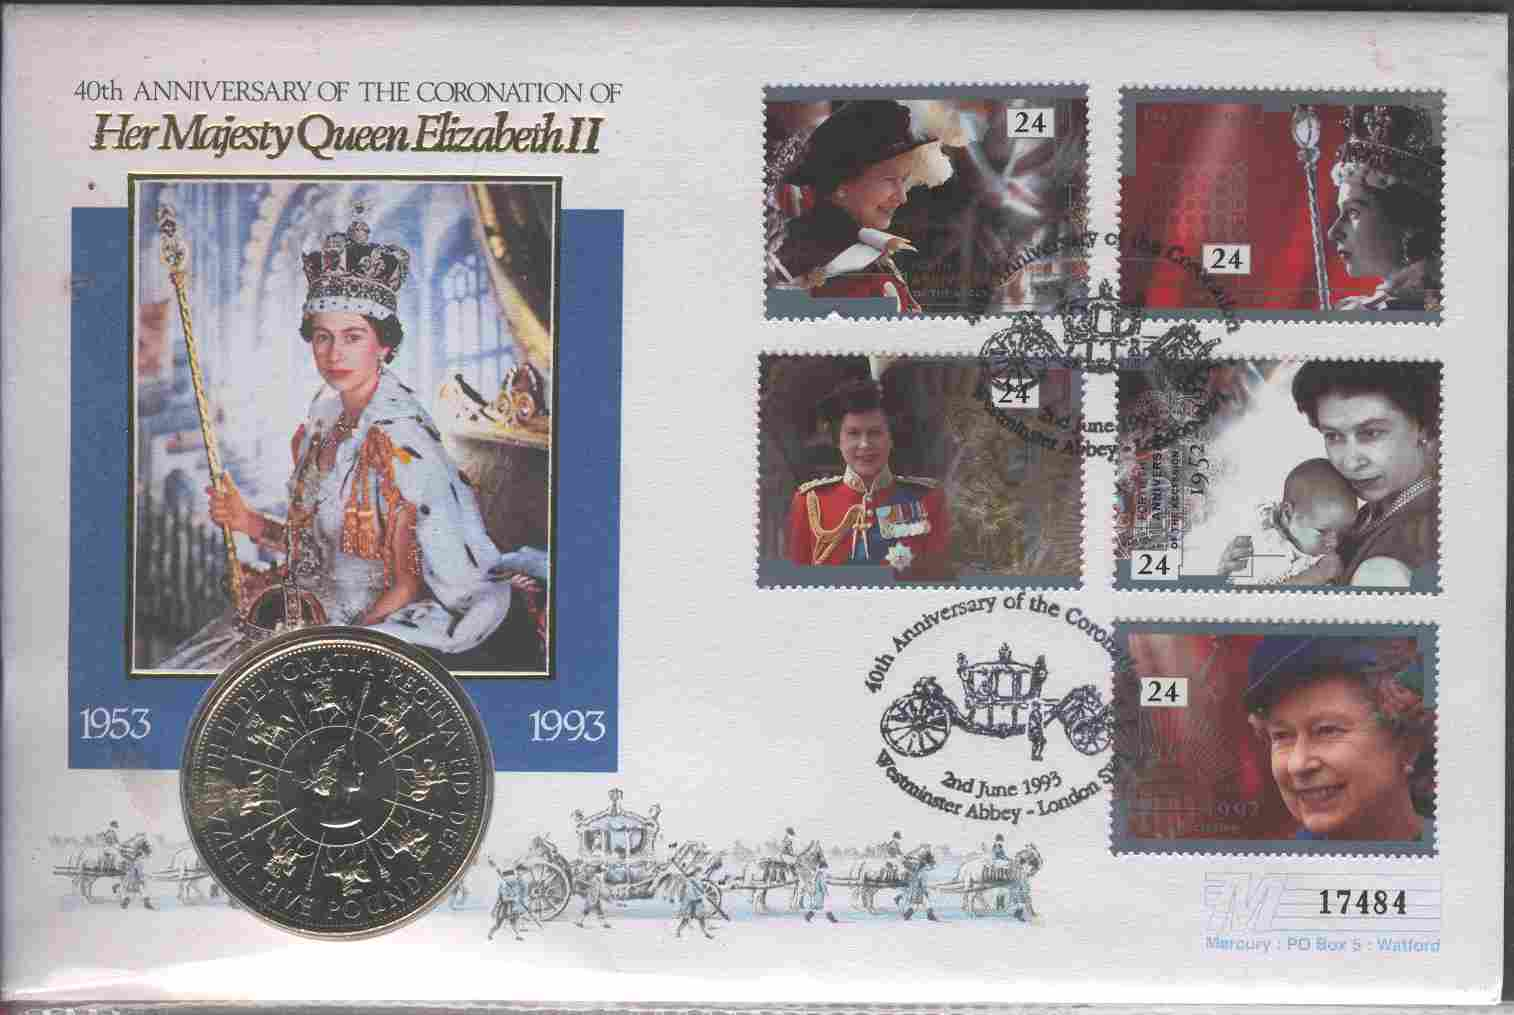 1993 GB - 40th Anniv of Queen Elizabeth II - Coin Cover (1)